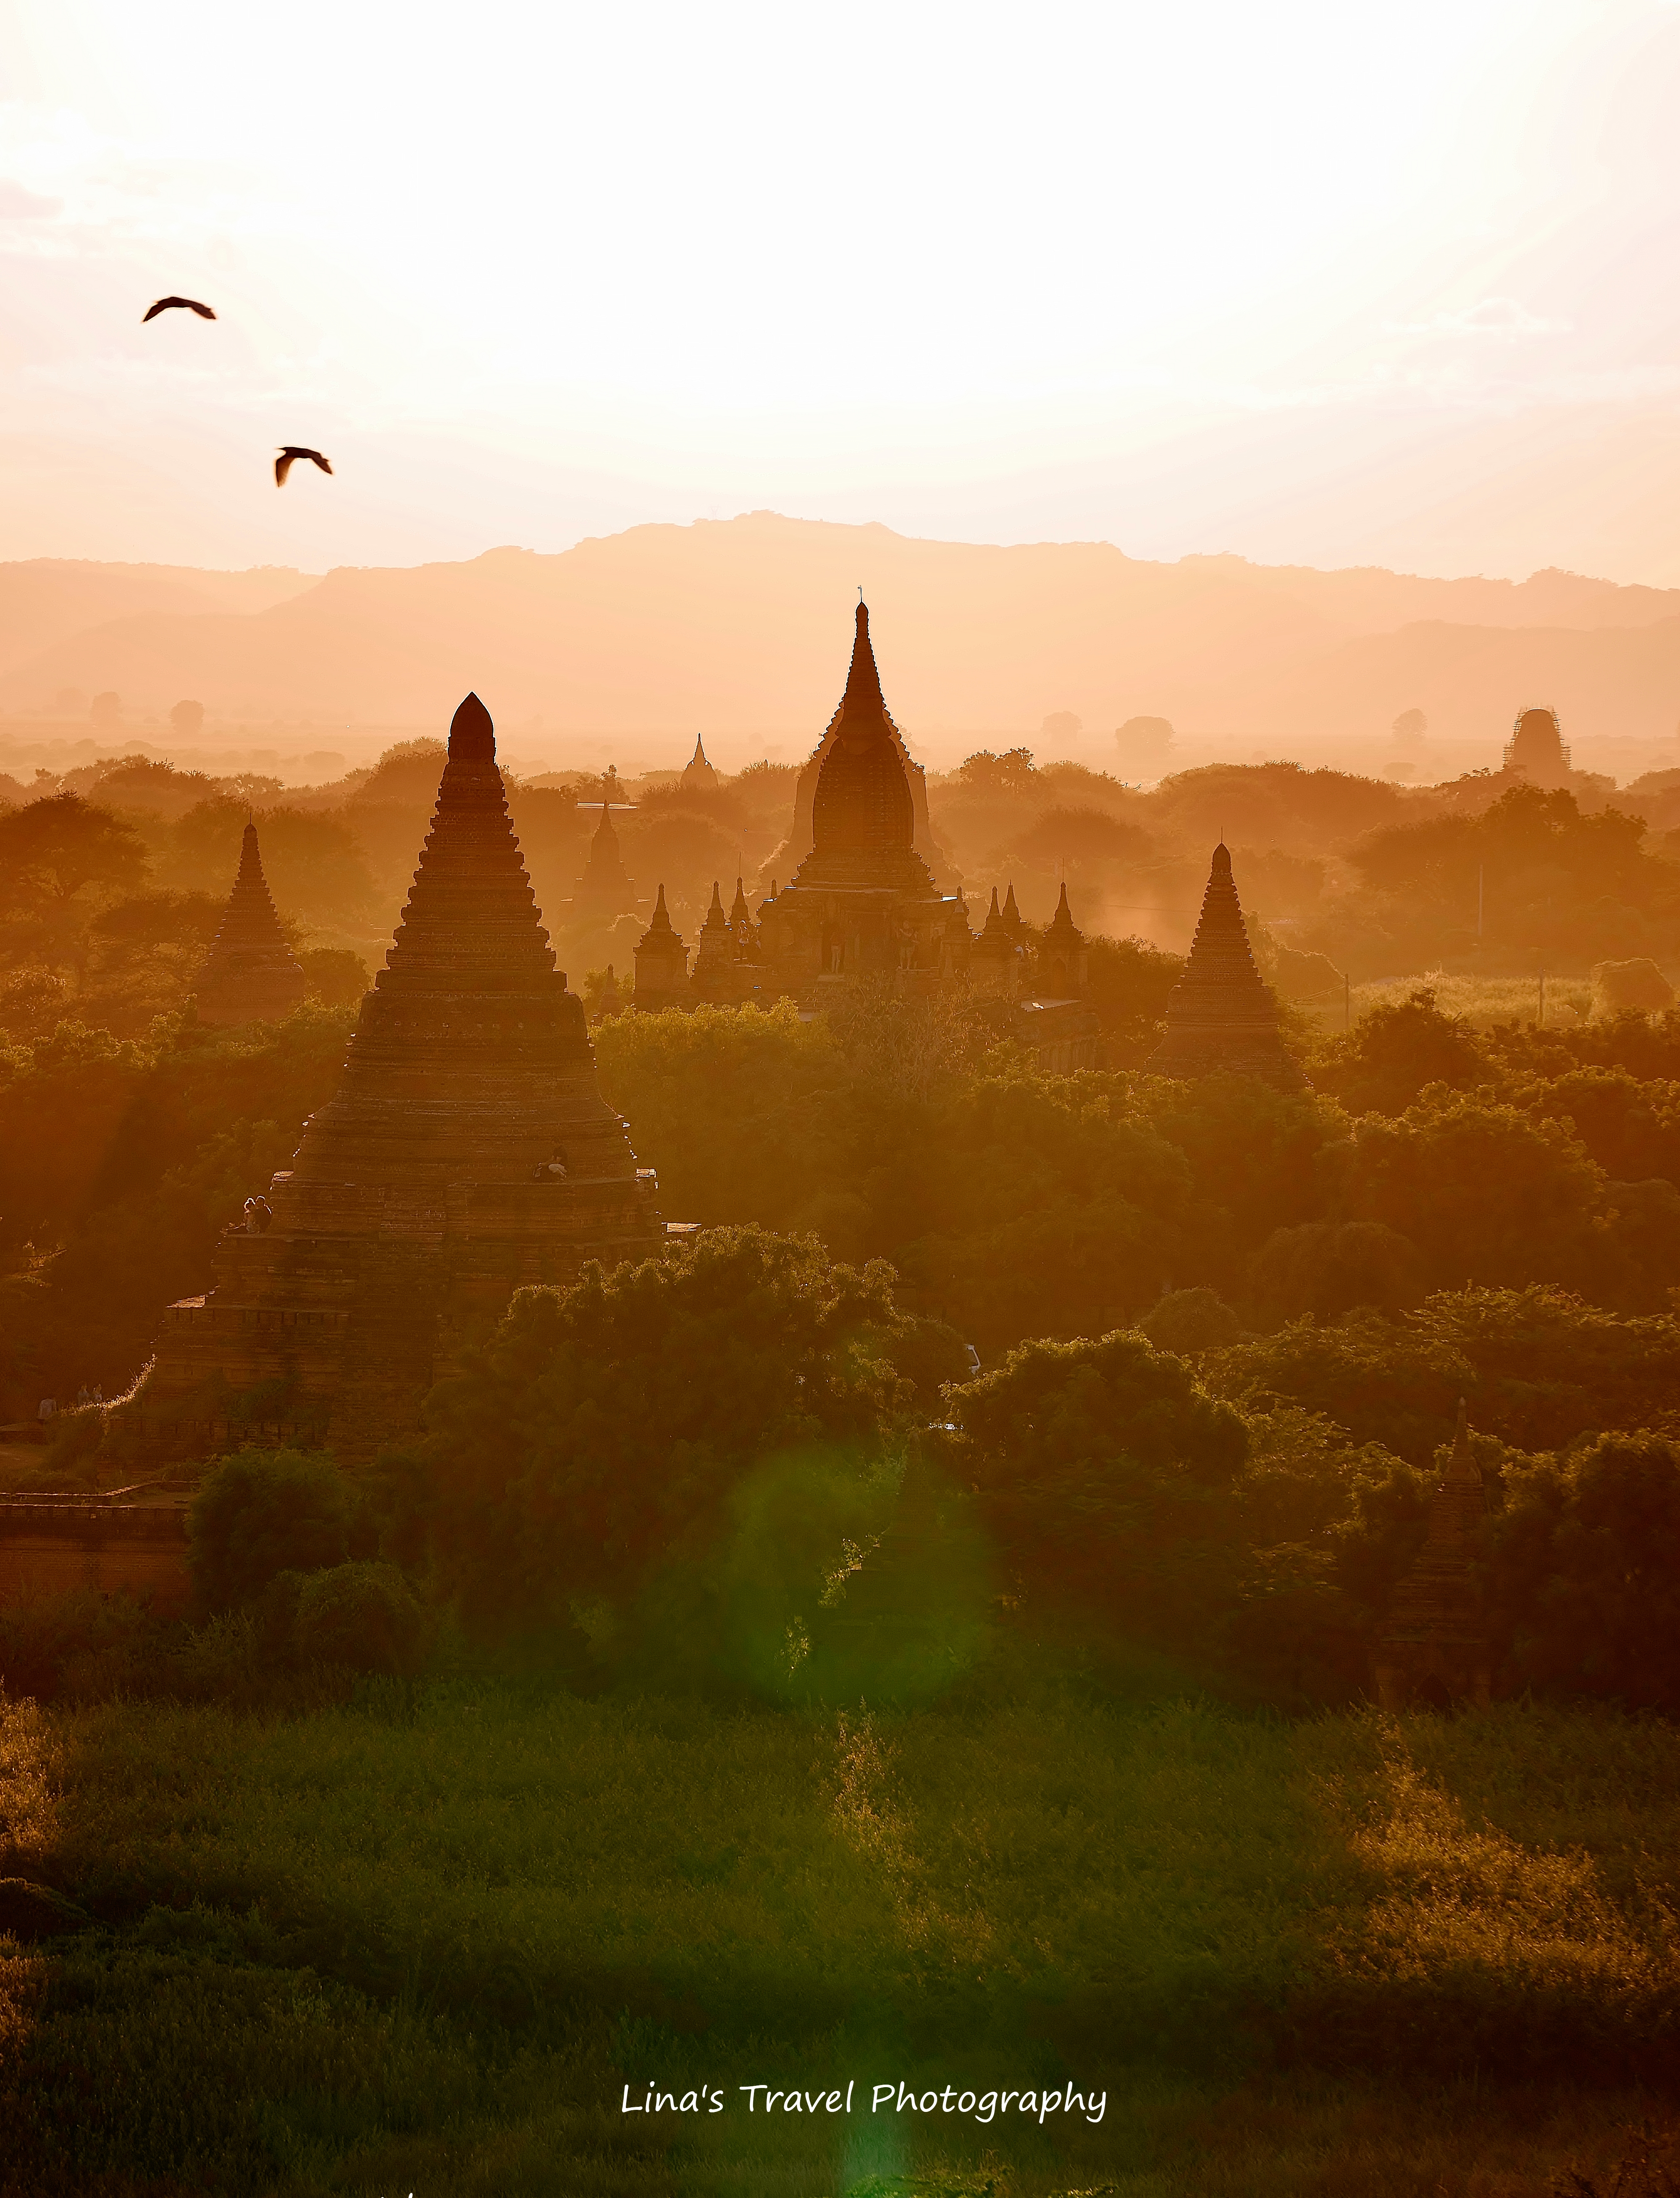 Sunset view from pagoda Shwesandow, Old Bagan, Burma (Myanmar)